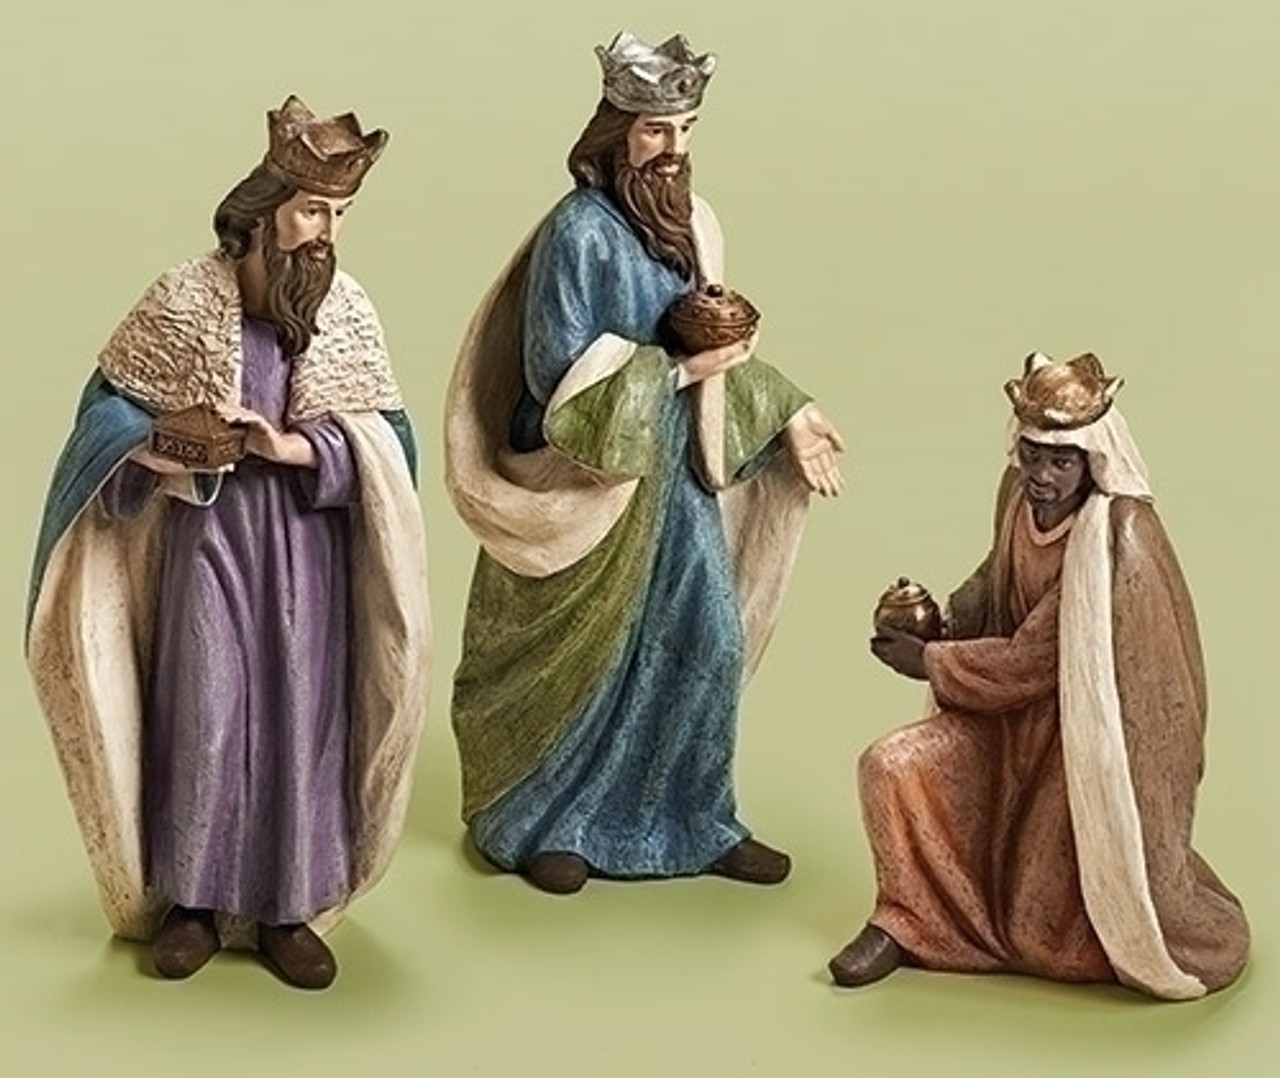 https://cdn11.bigcommerce.com/s-r75dscg/images/stencil/1280x1280/products/15746/23083/3-piece-traditional-nativity-set-large-3-kings-set-tallest-stands-32-inches-RO31994__53169.1473366698.jpg?c=2